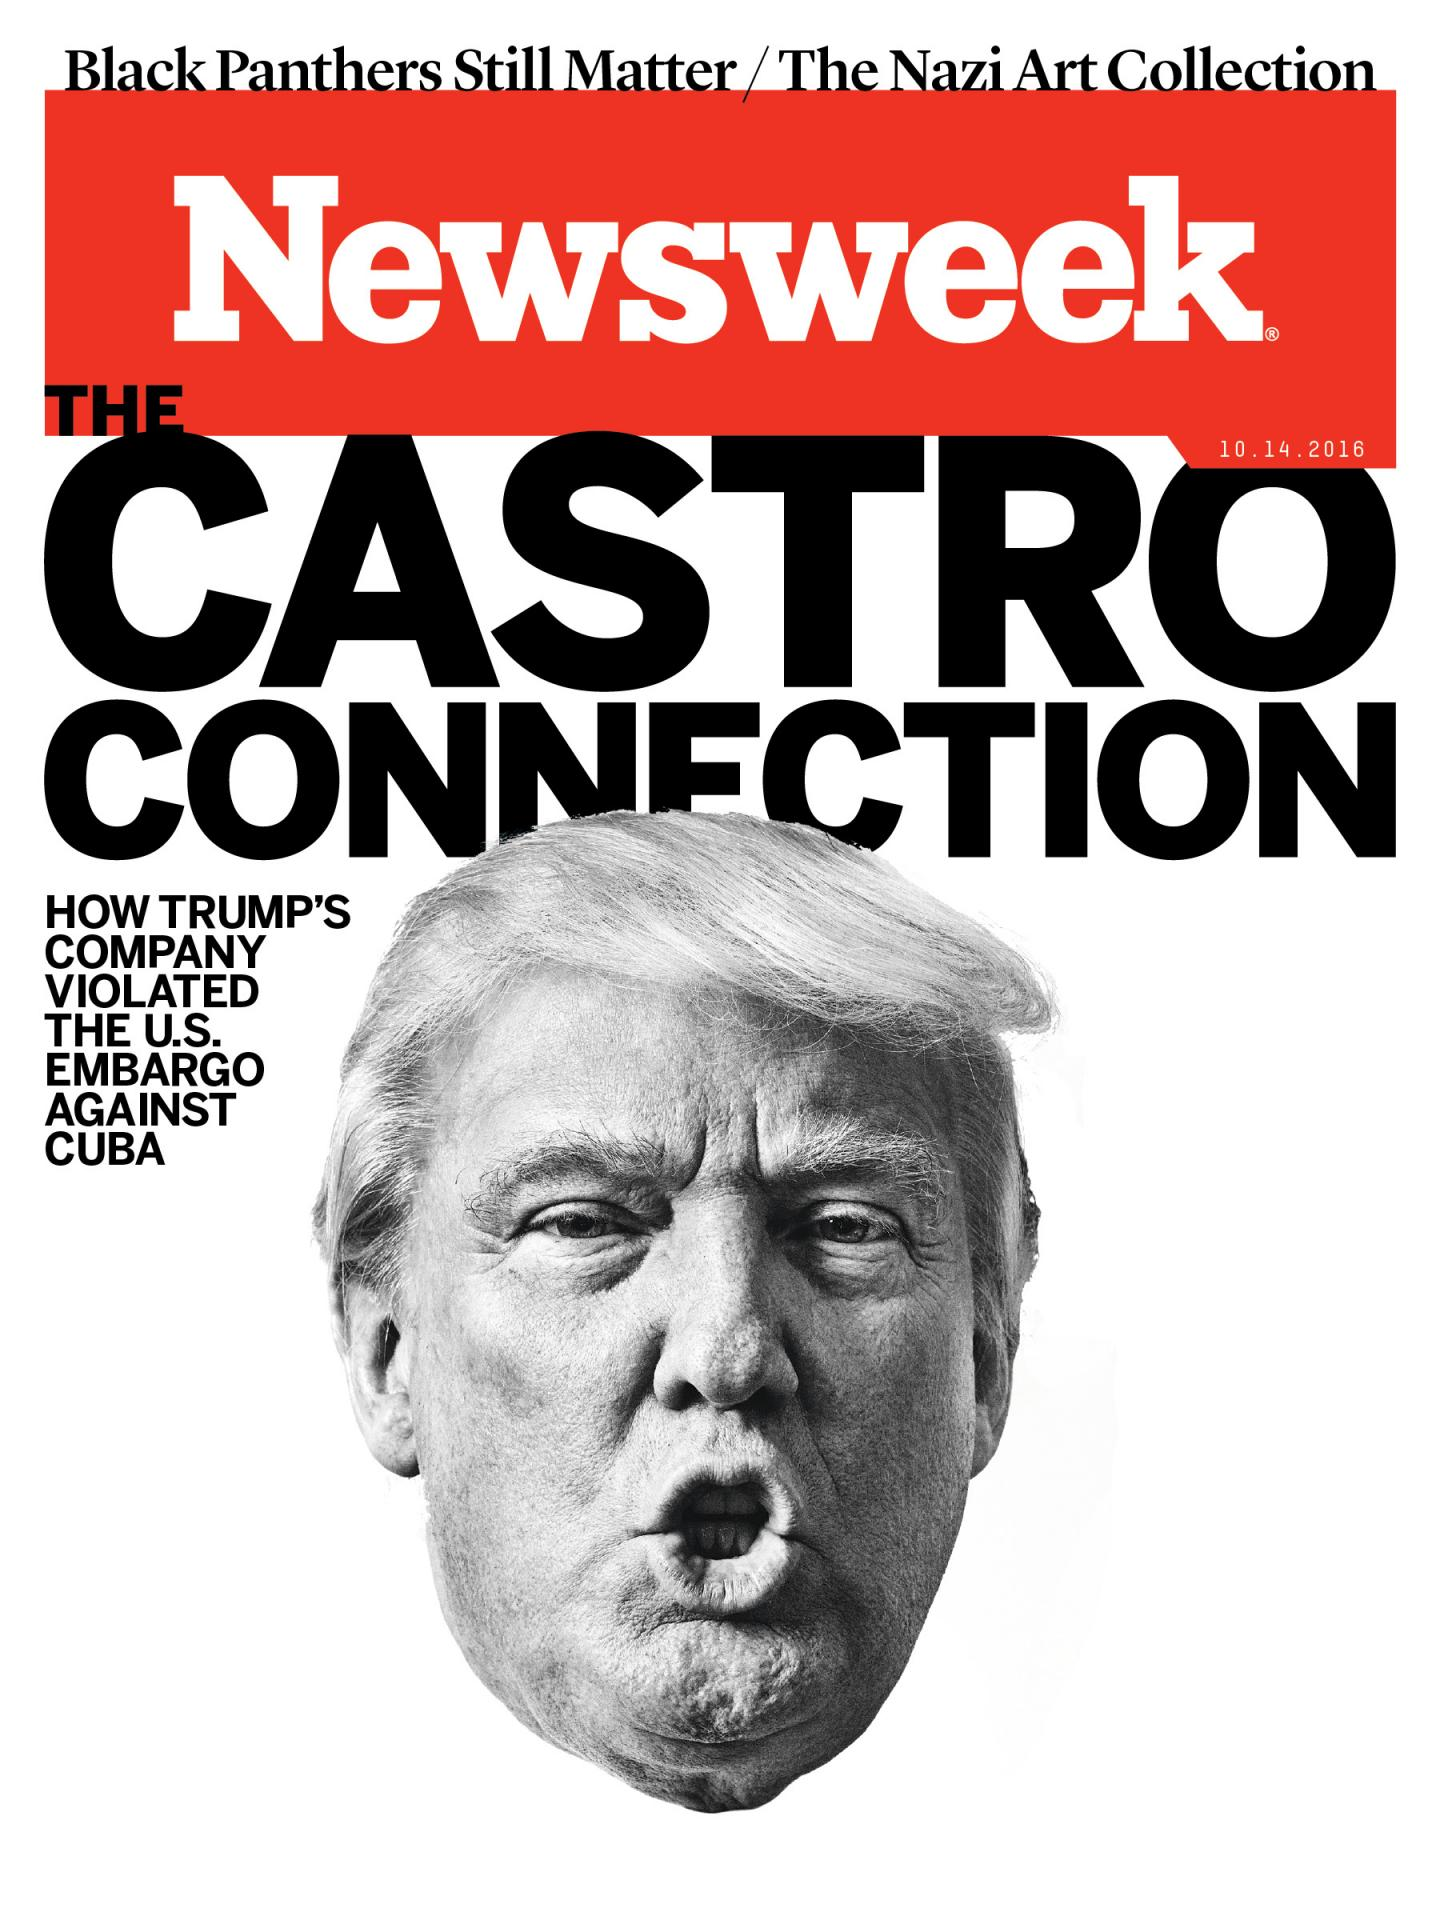 """Newsweek reported Thursday that """"A company controlled by Donald Trump, the Republican nominee for president, secretly conducted business in Communist Cuba during Fidel Castro's presidency despite strict American trade bans that made such undertakings illegal. . ."""""""